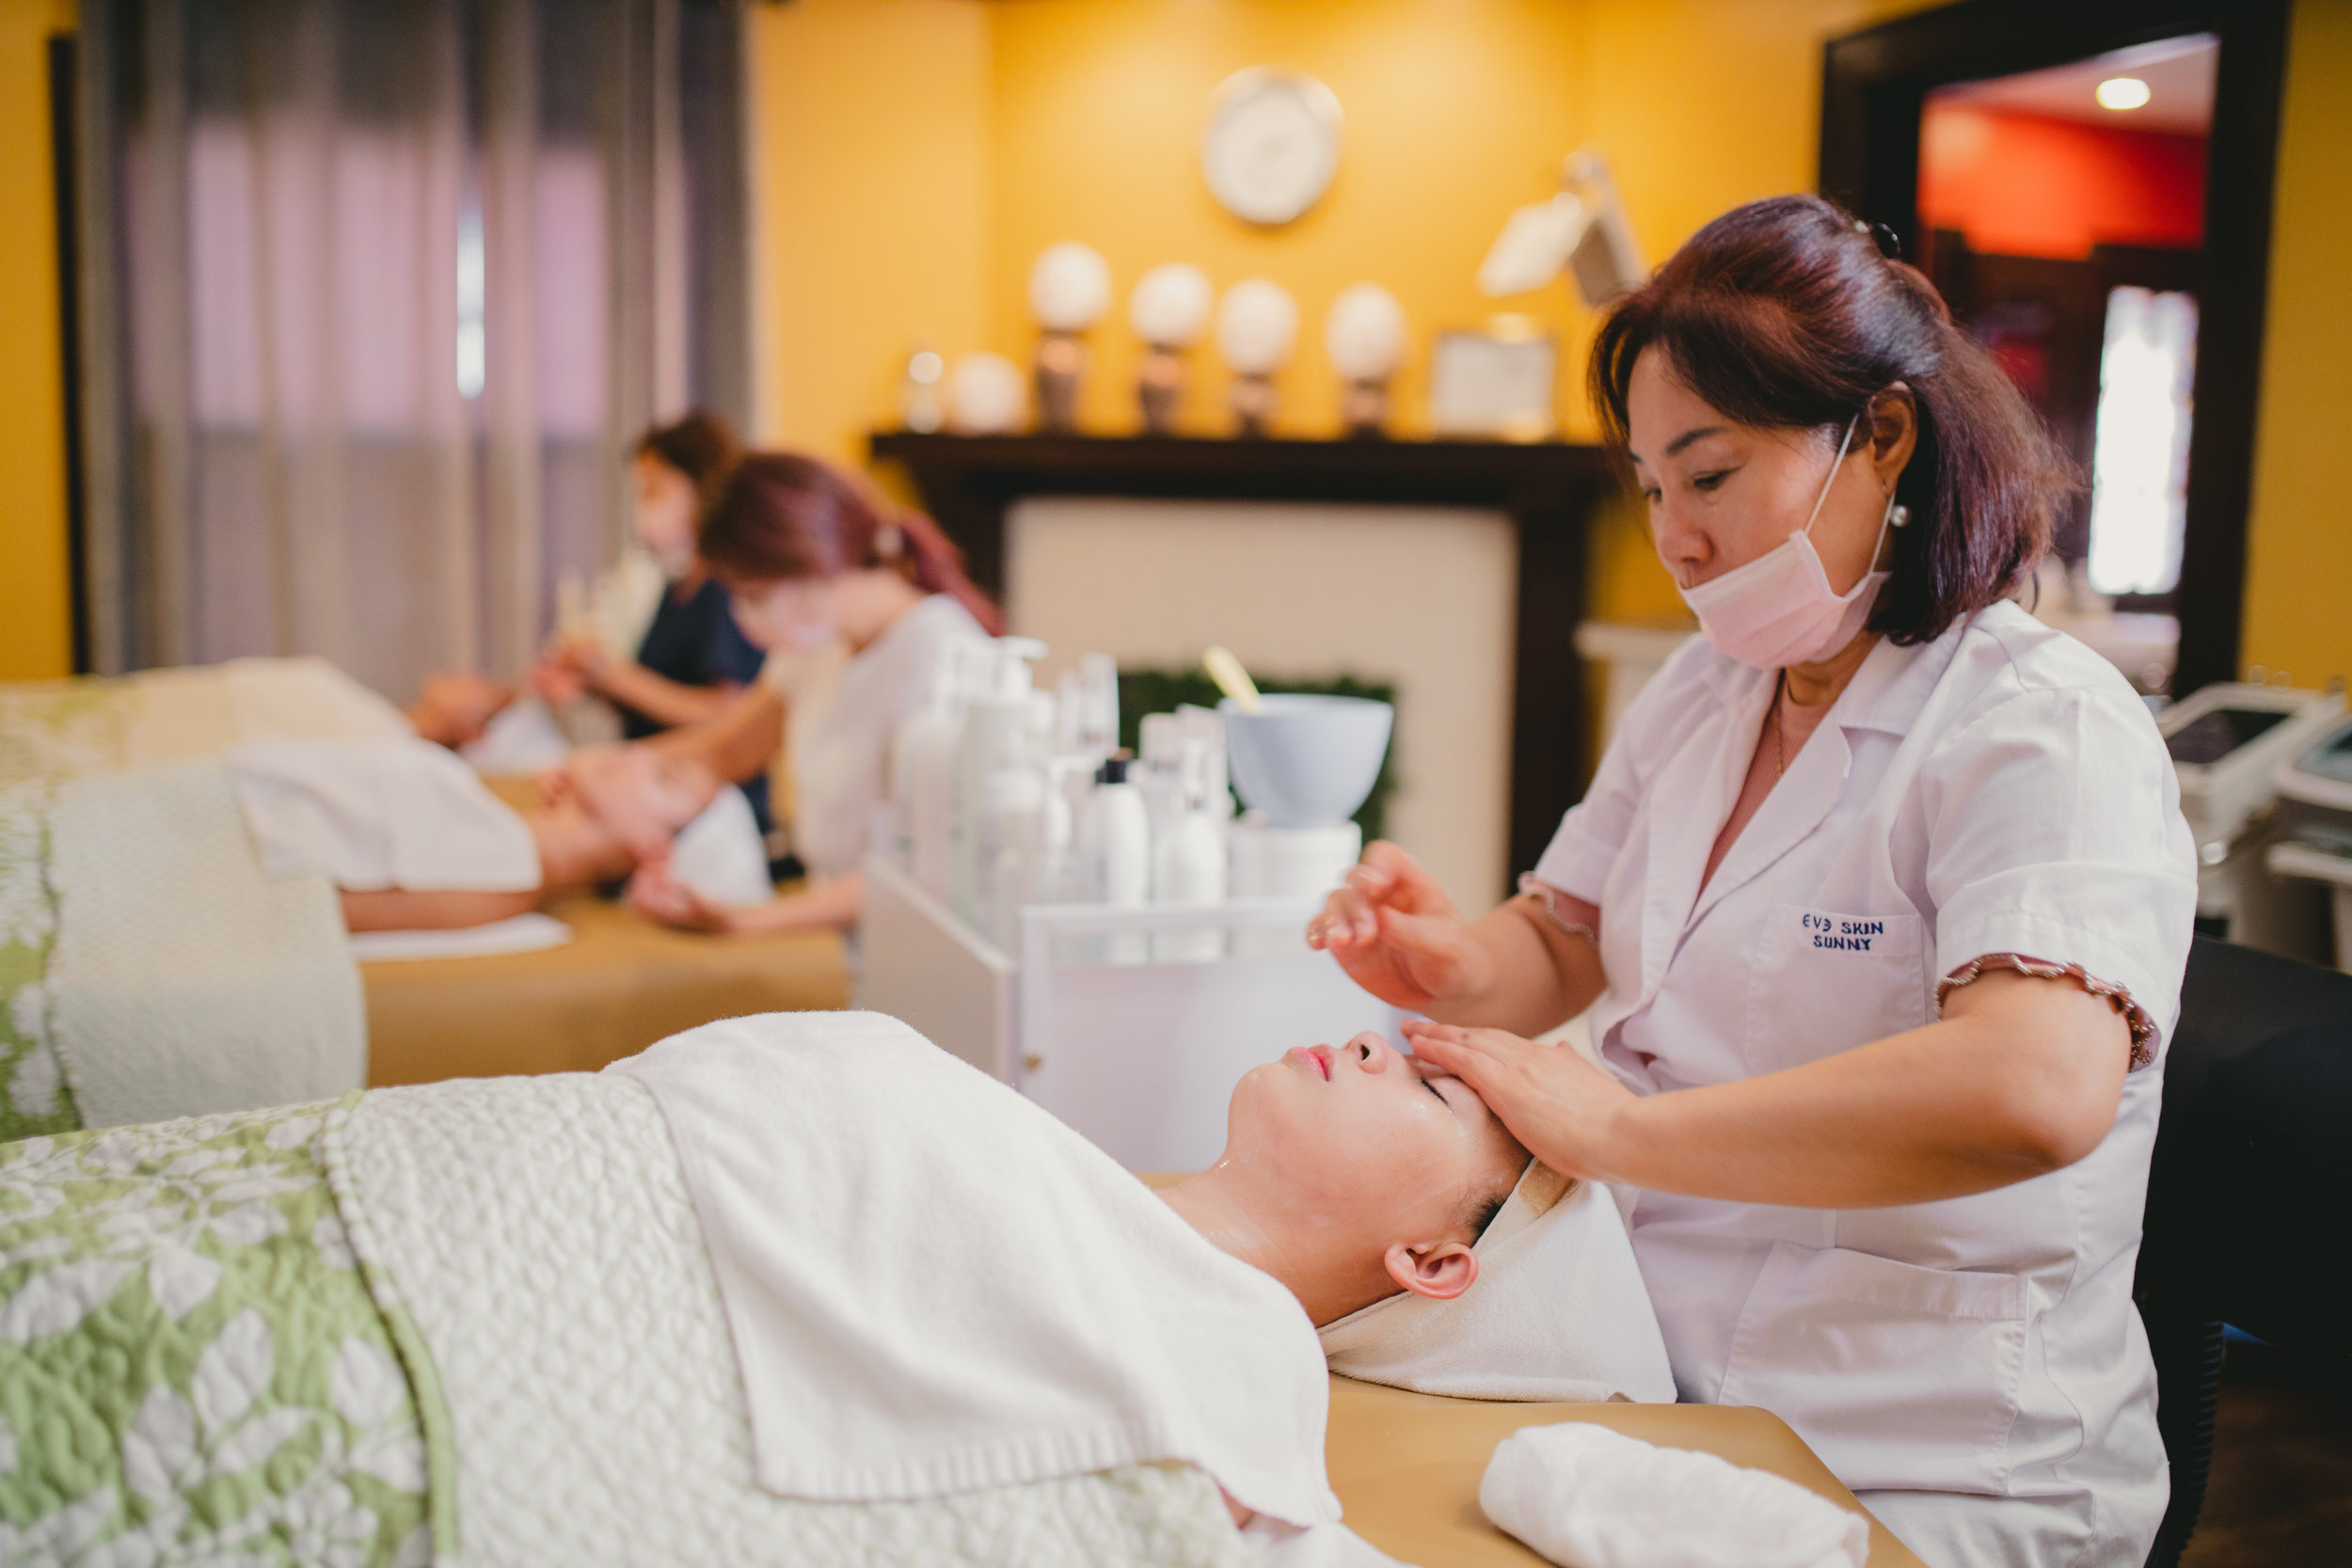 Group Friendly - Although our skin care services are an excellent way to escape everyday stress and rejuvenate your skin, our services are great for groups as well!